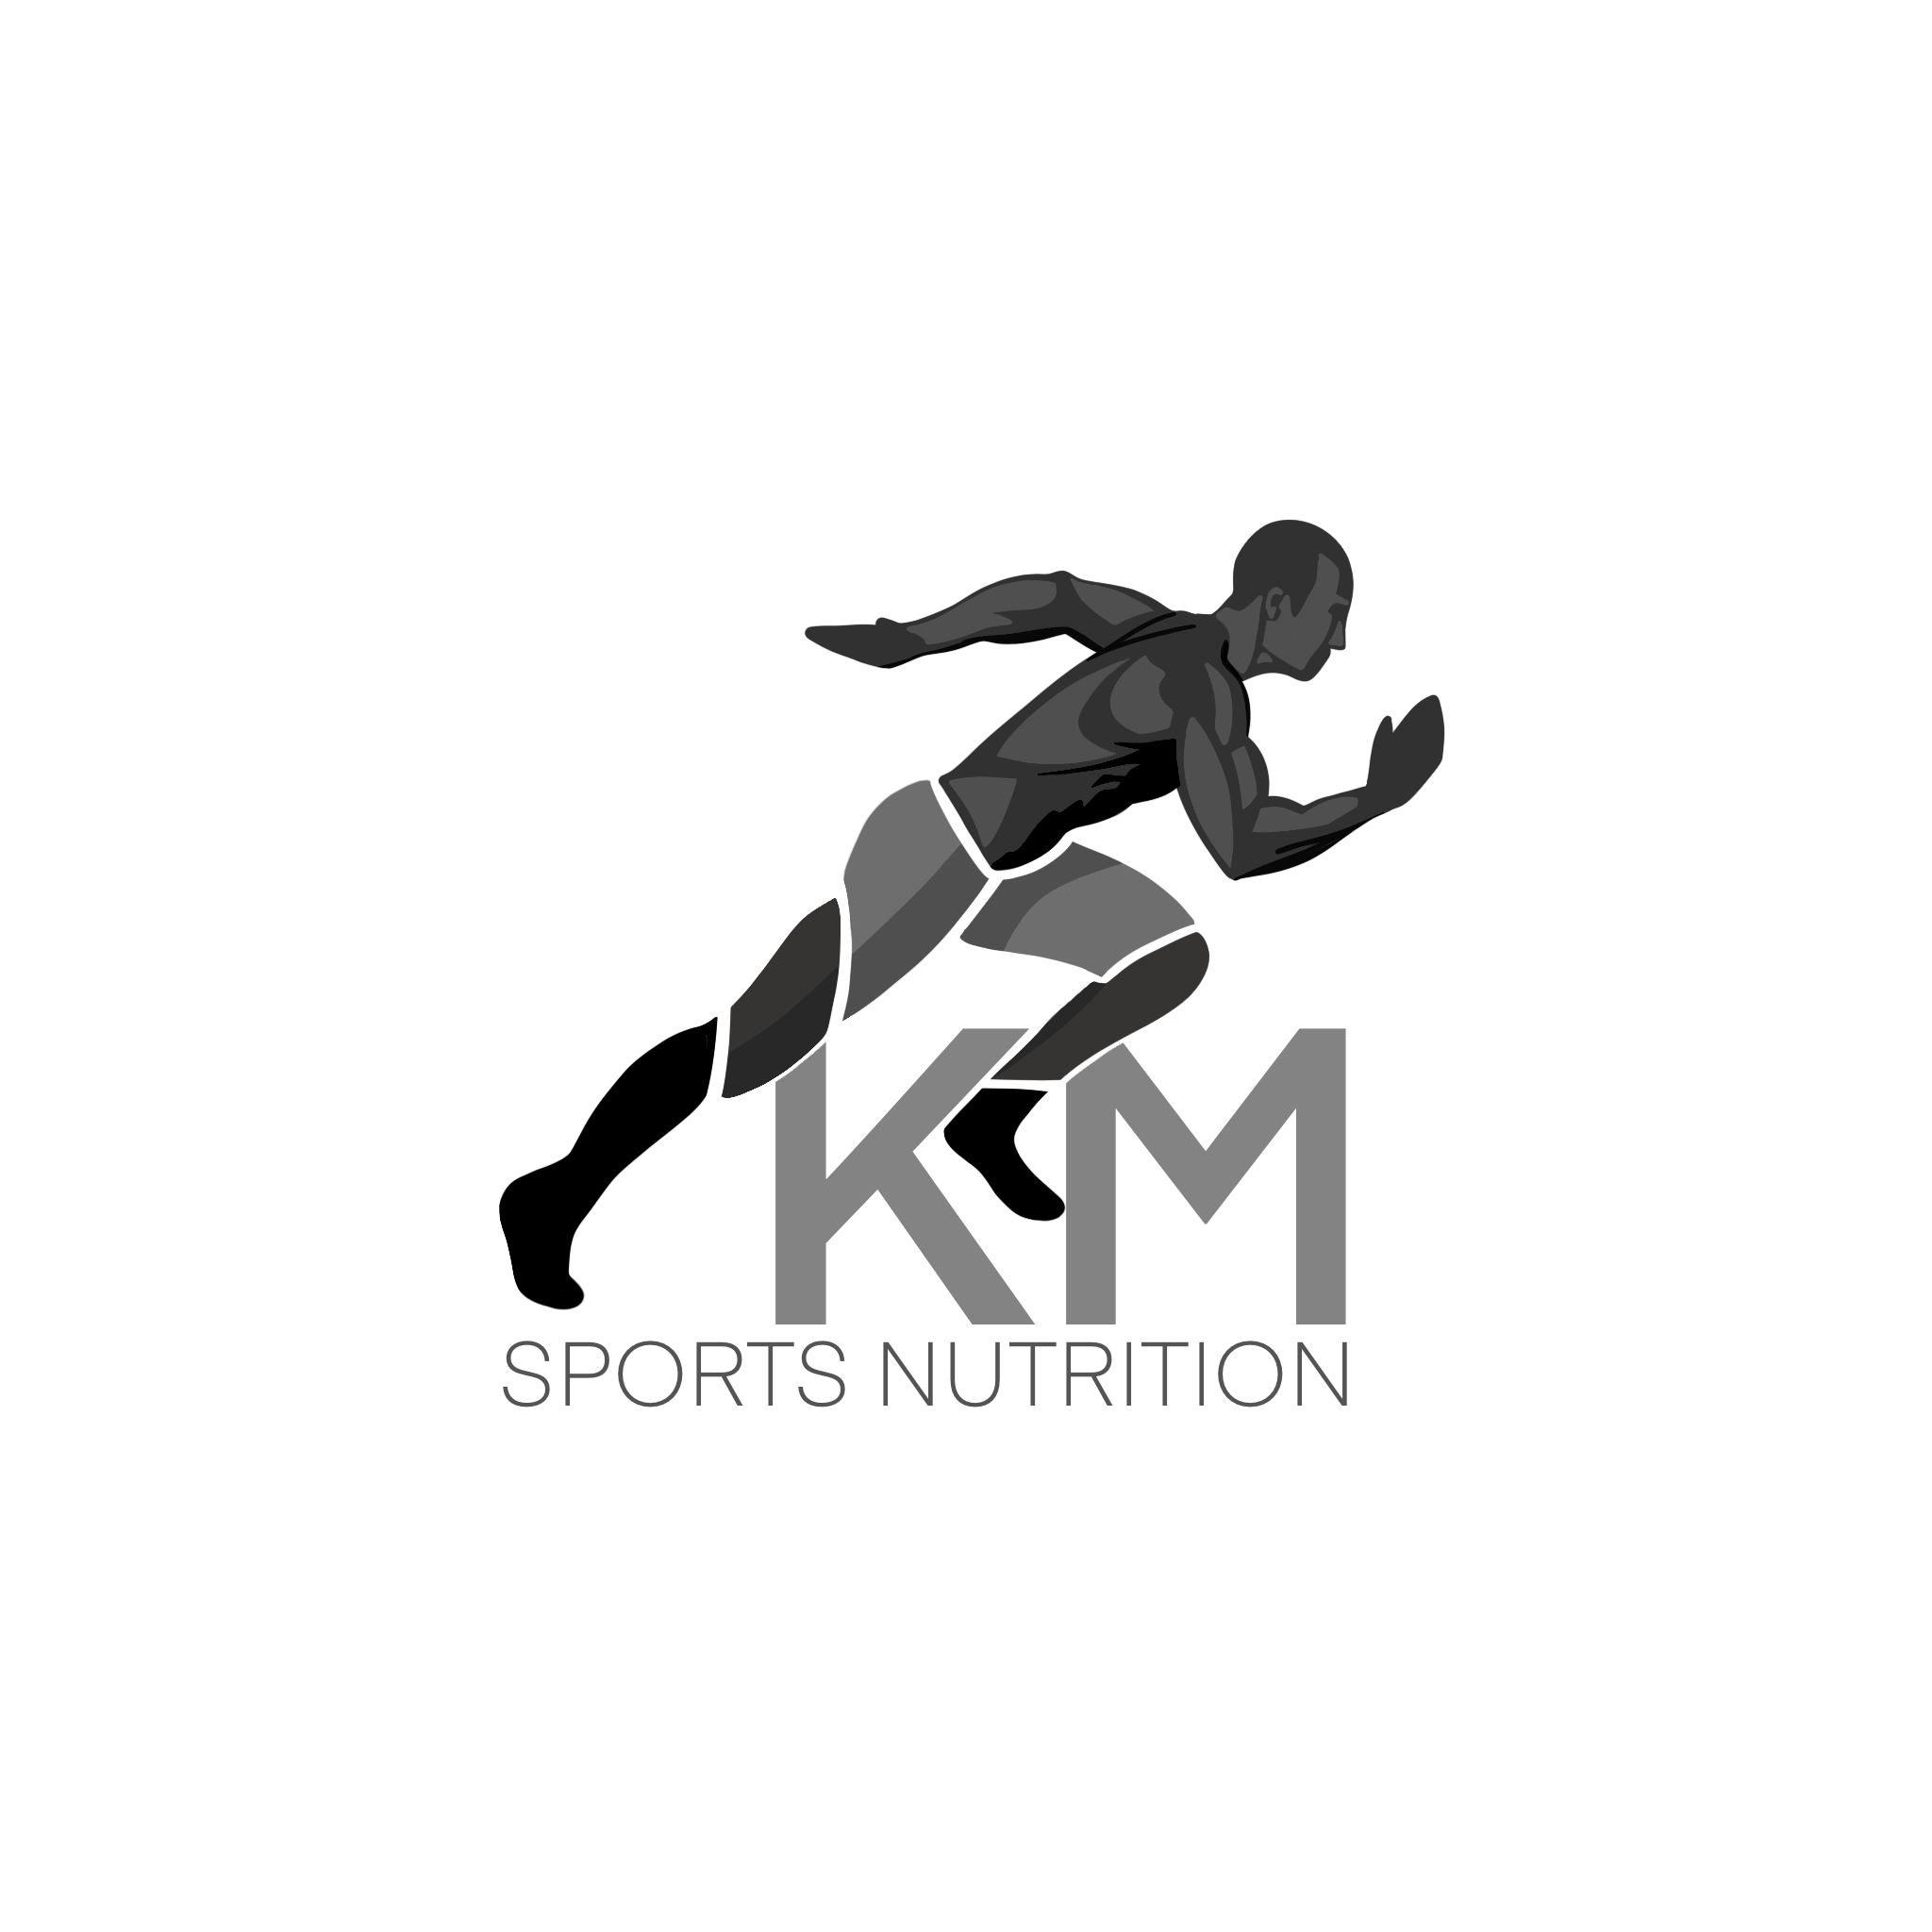 KM Sports Nutrition Launches Virtual Nutritionist Platform